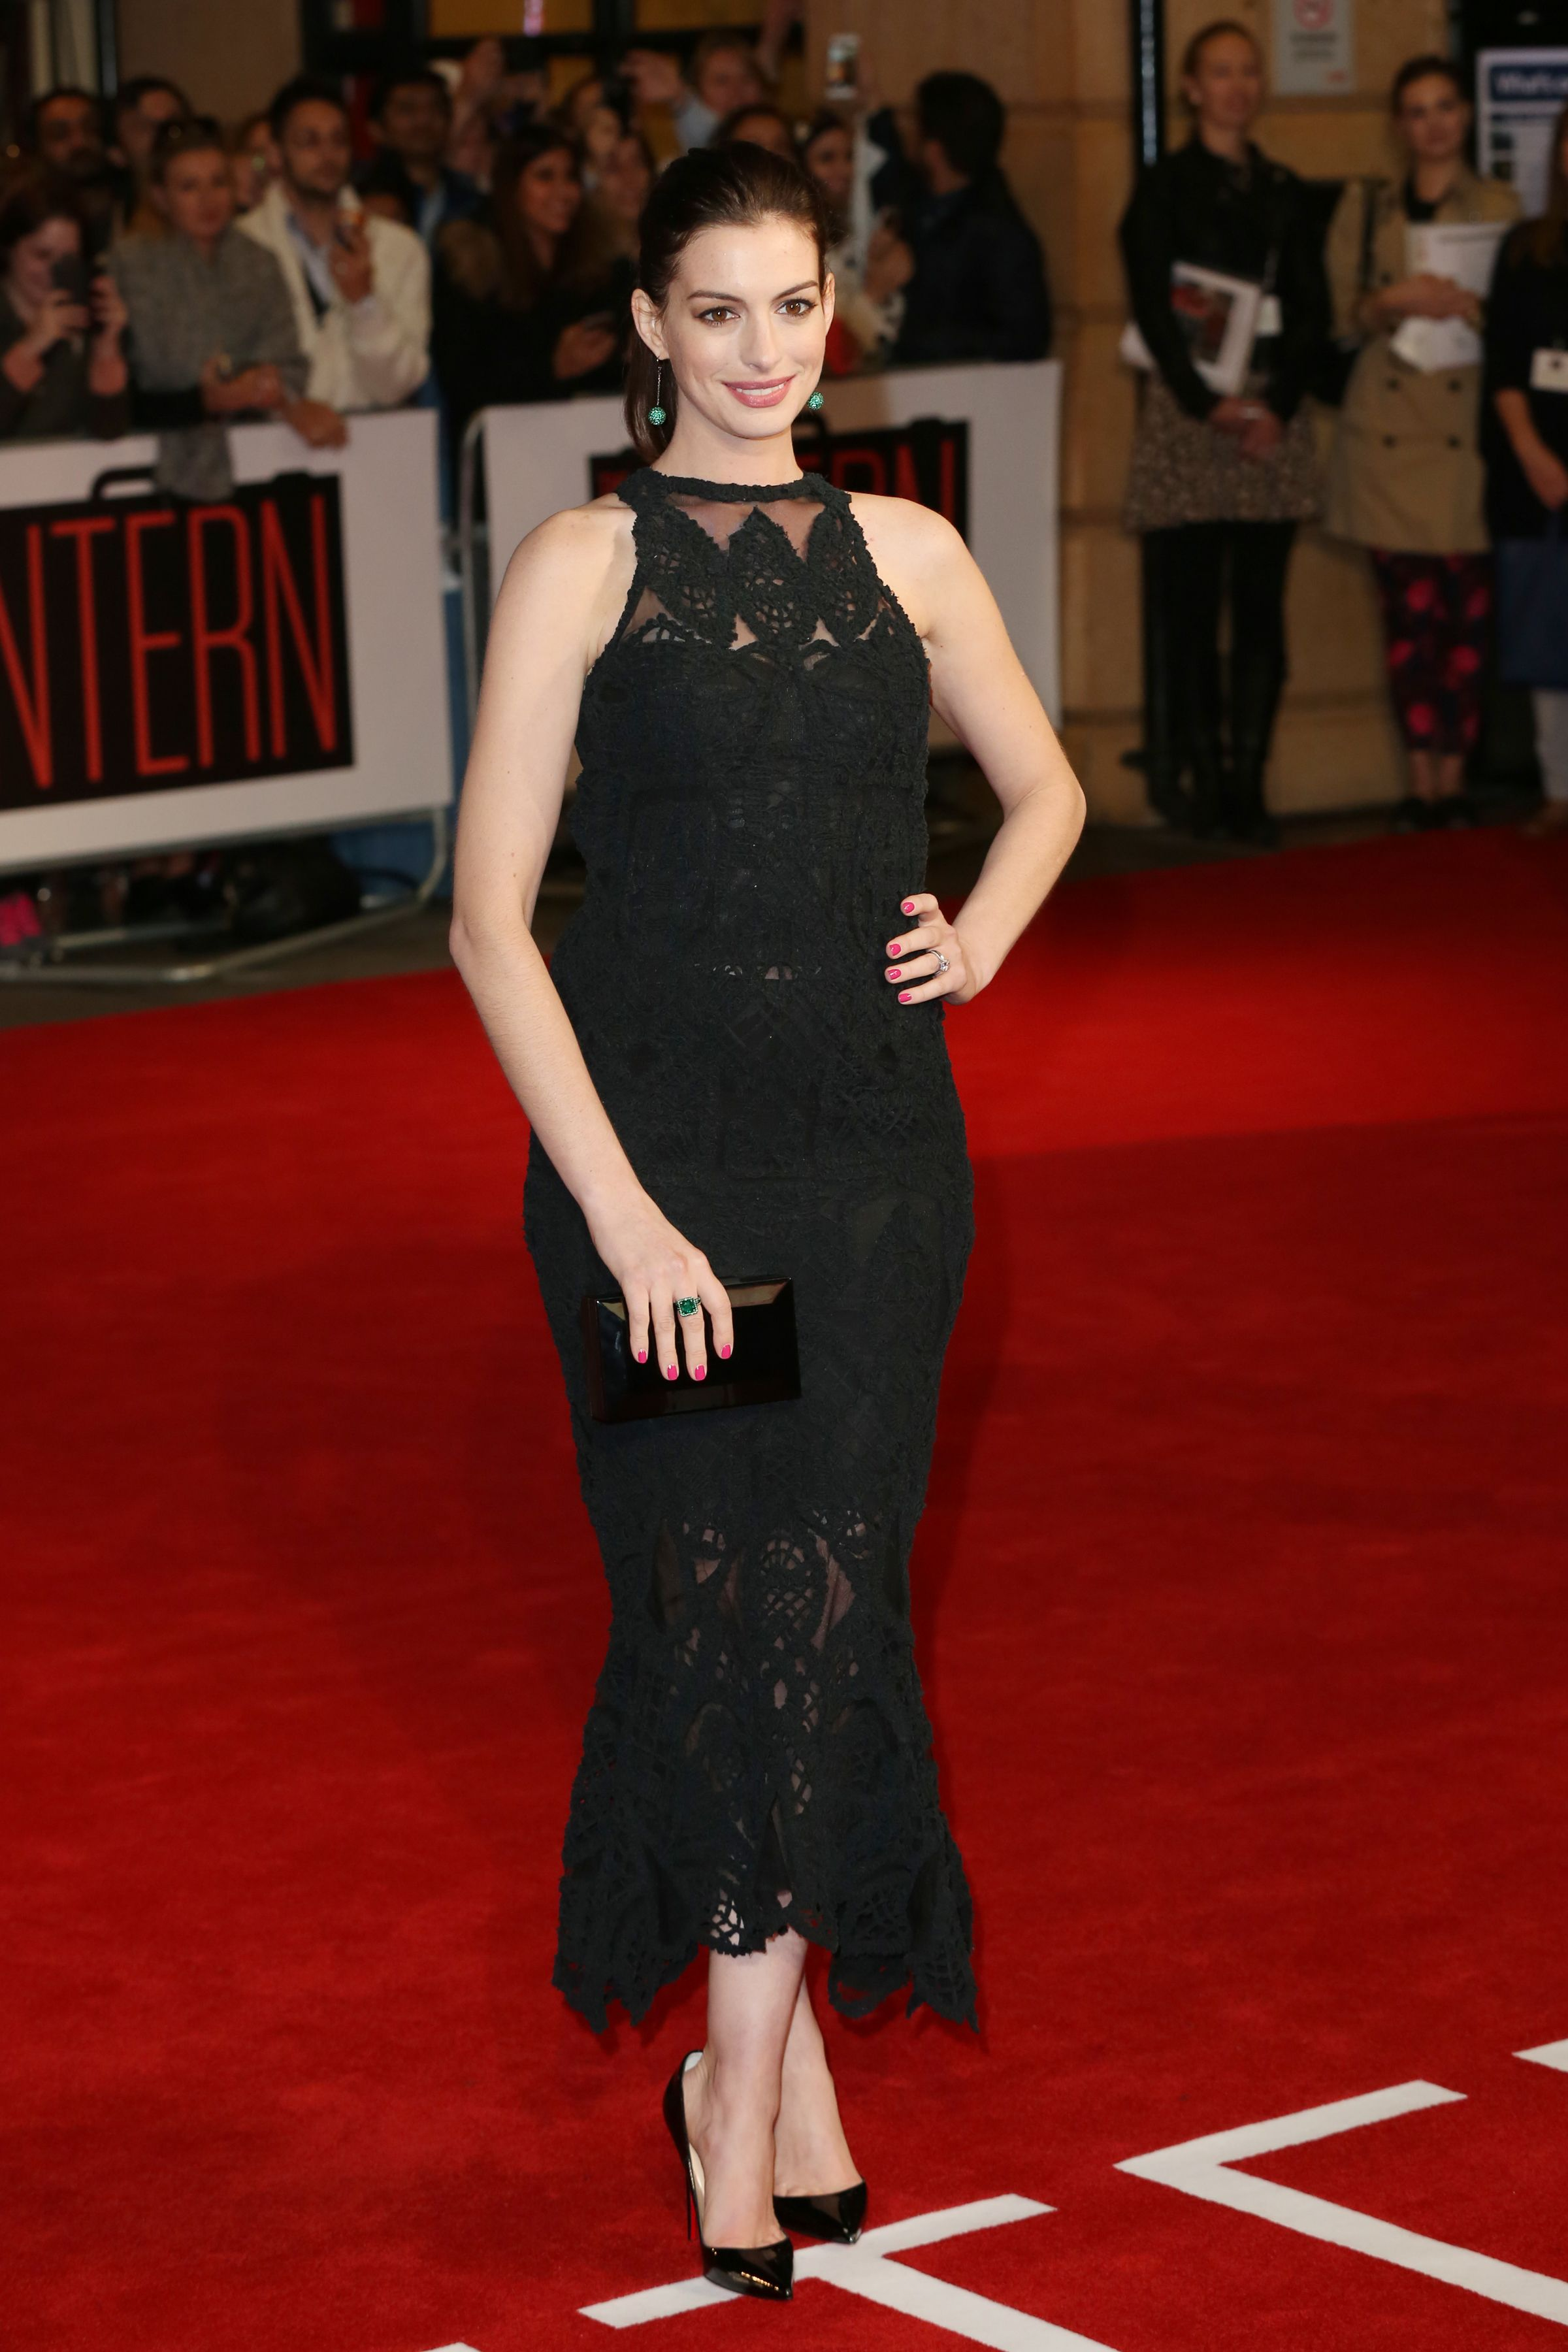 Anne Hathaway attends the UK Premiere of 'The Intern' at Vue West End on September 27, 2015 in London, England.